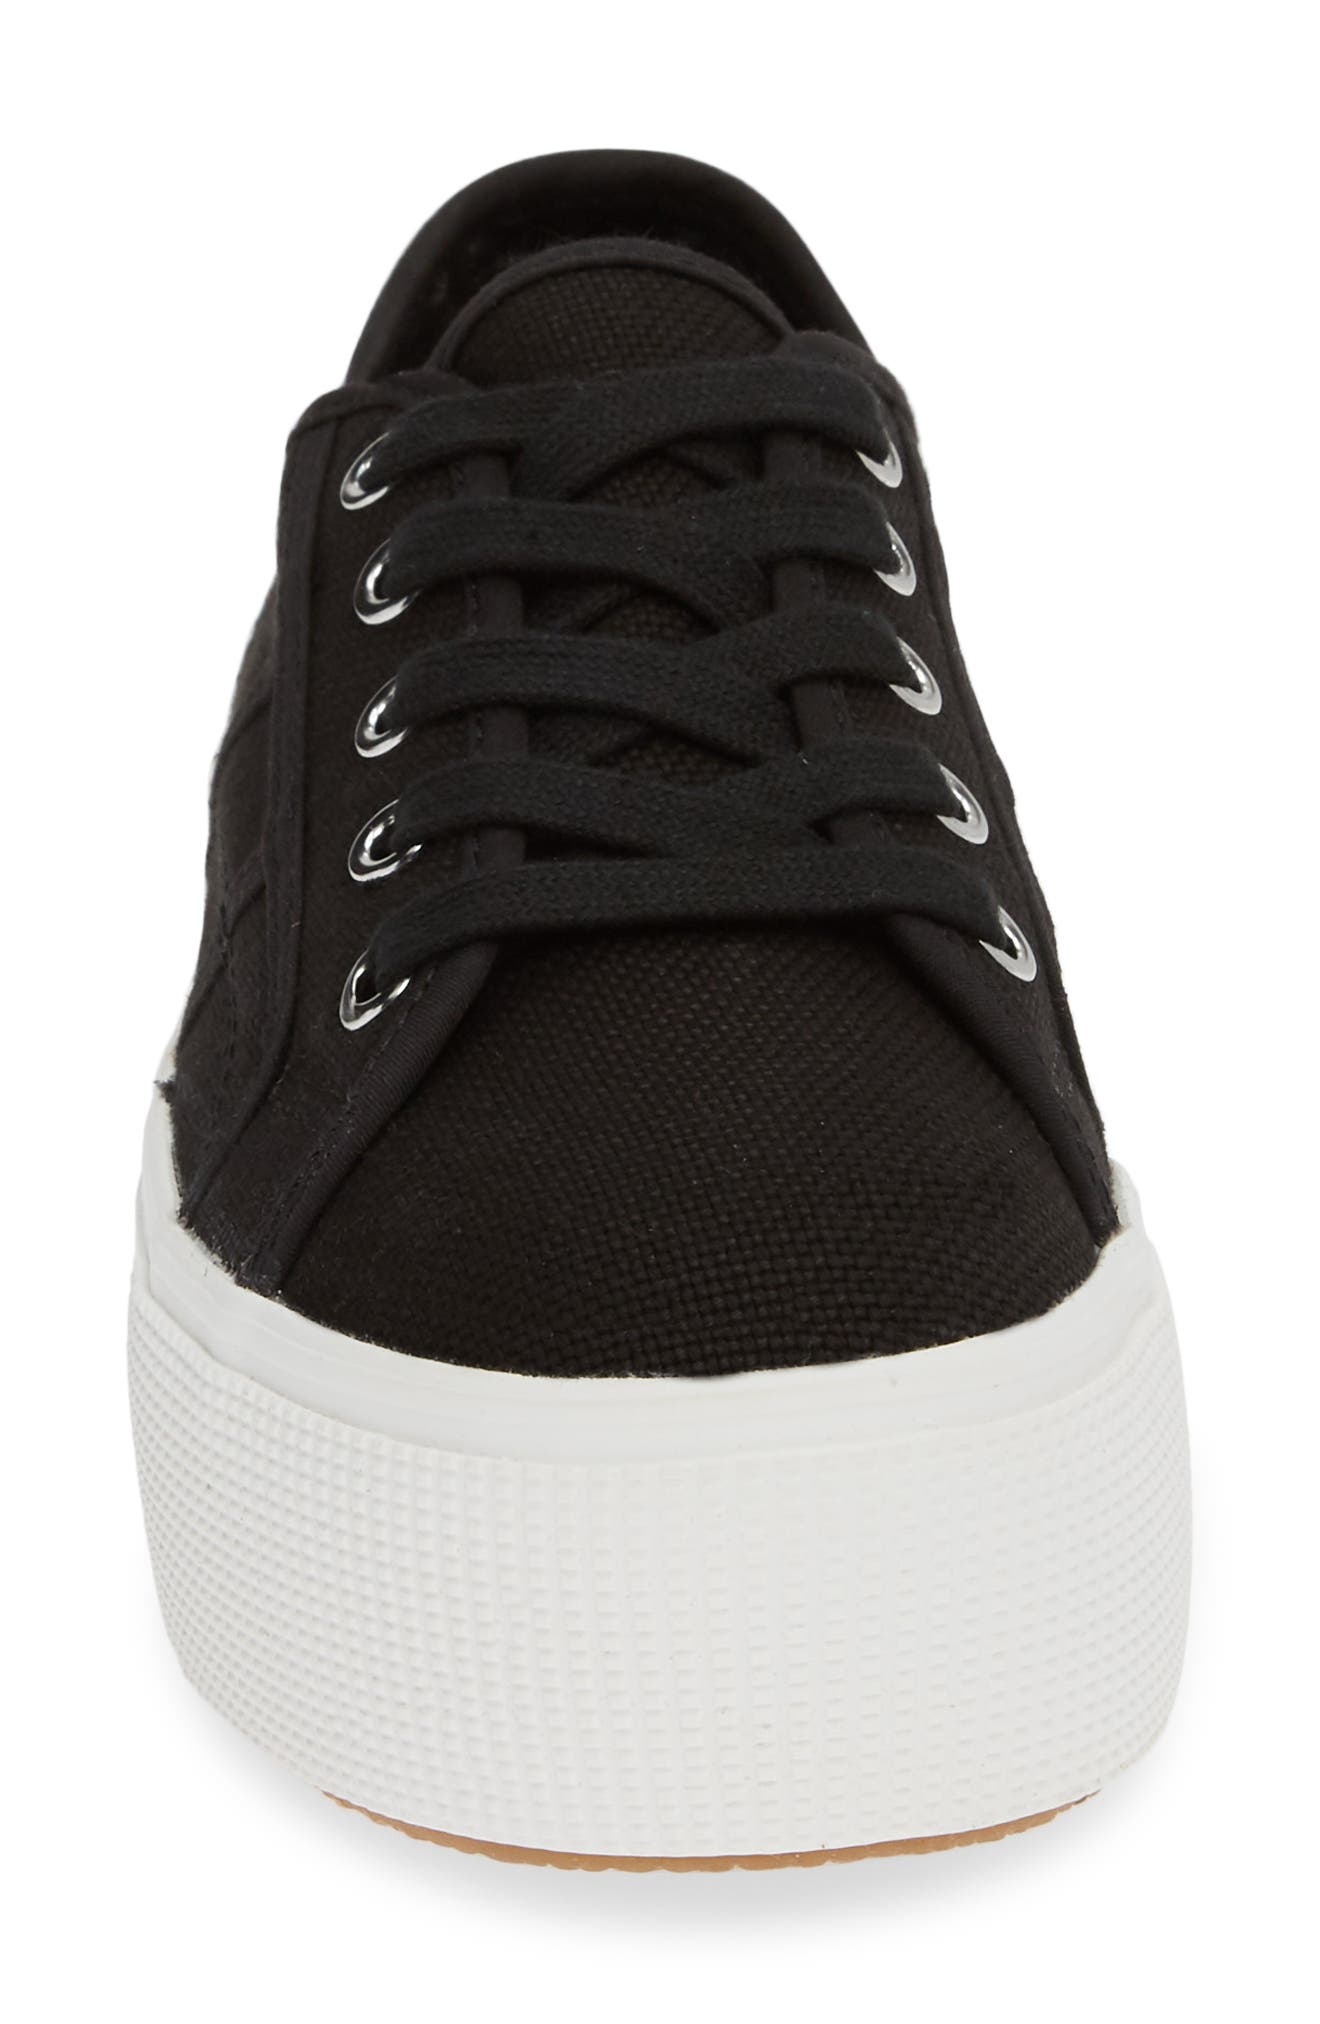 STEVE MADDEN,                             Emmi Platform Sneaker,                             Alternate thumbnail 4, color,                             BLACK